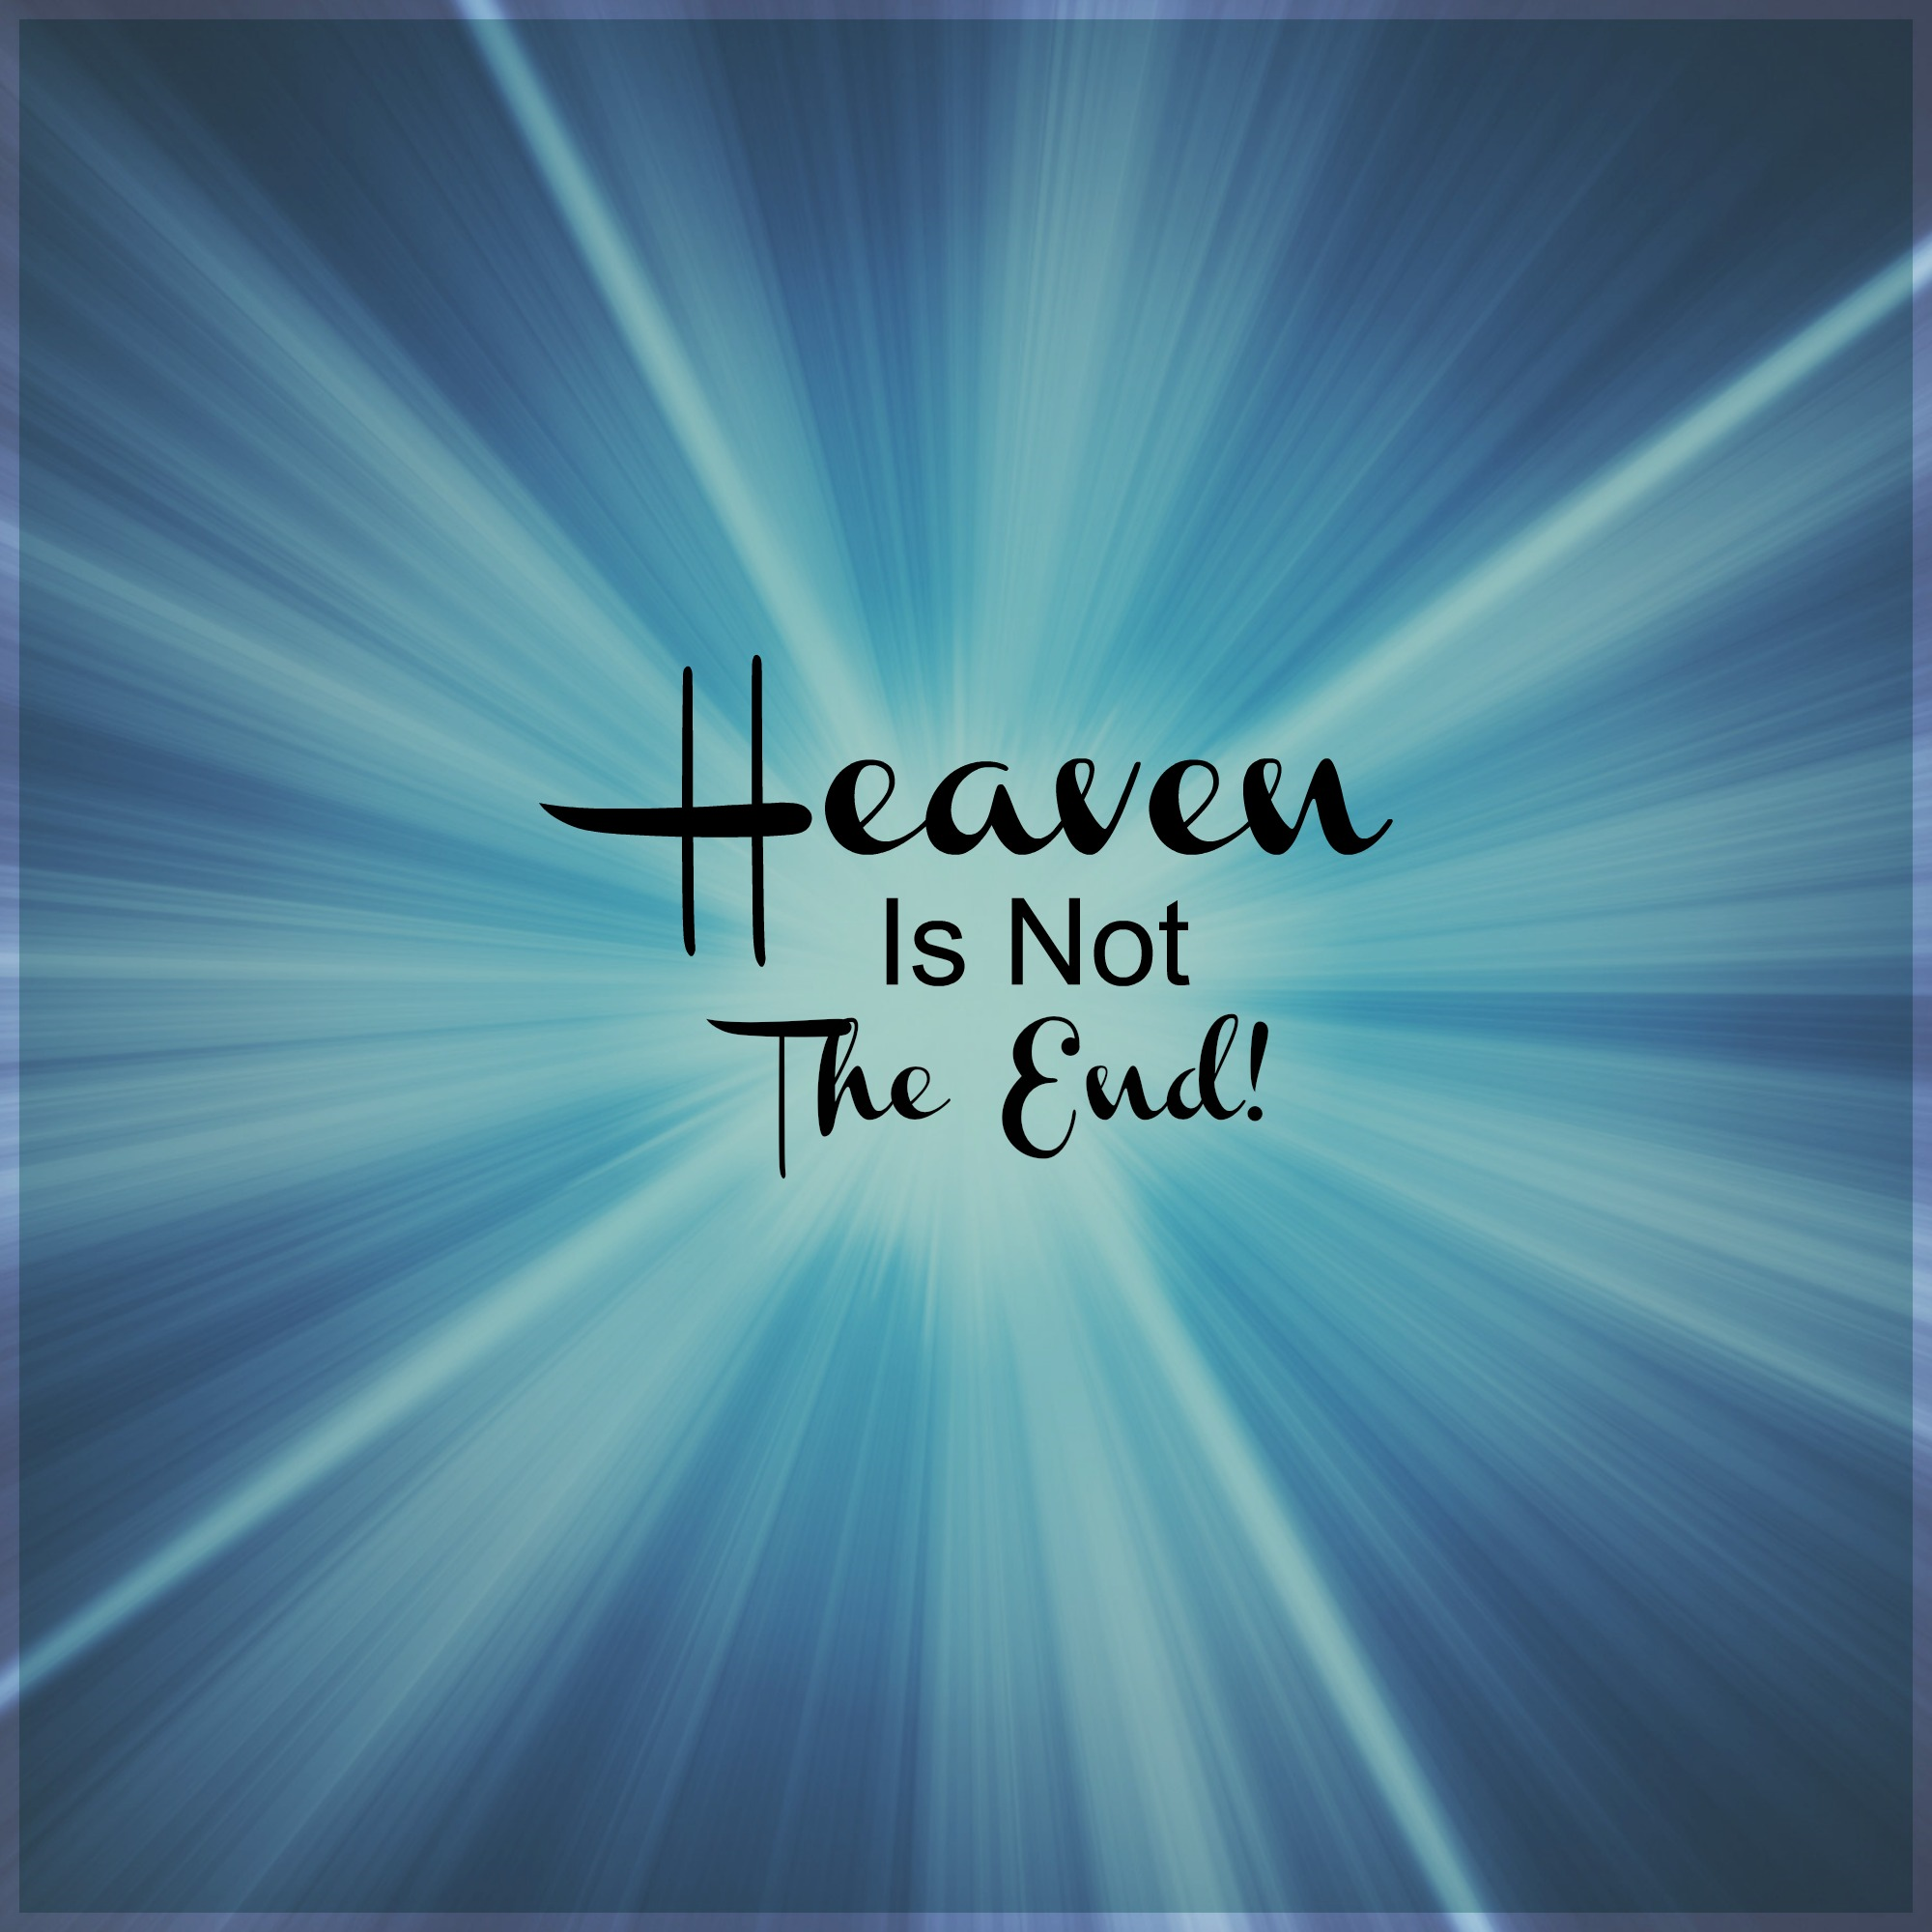 Heaven Is Not The End!